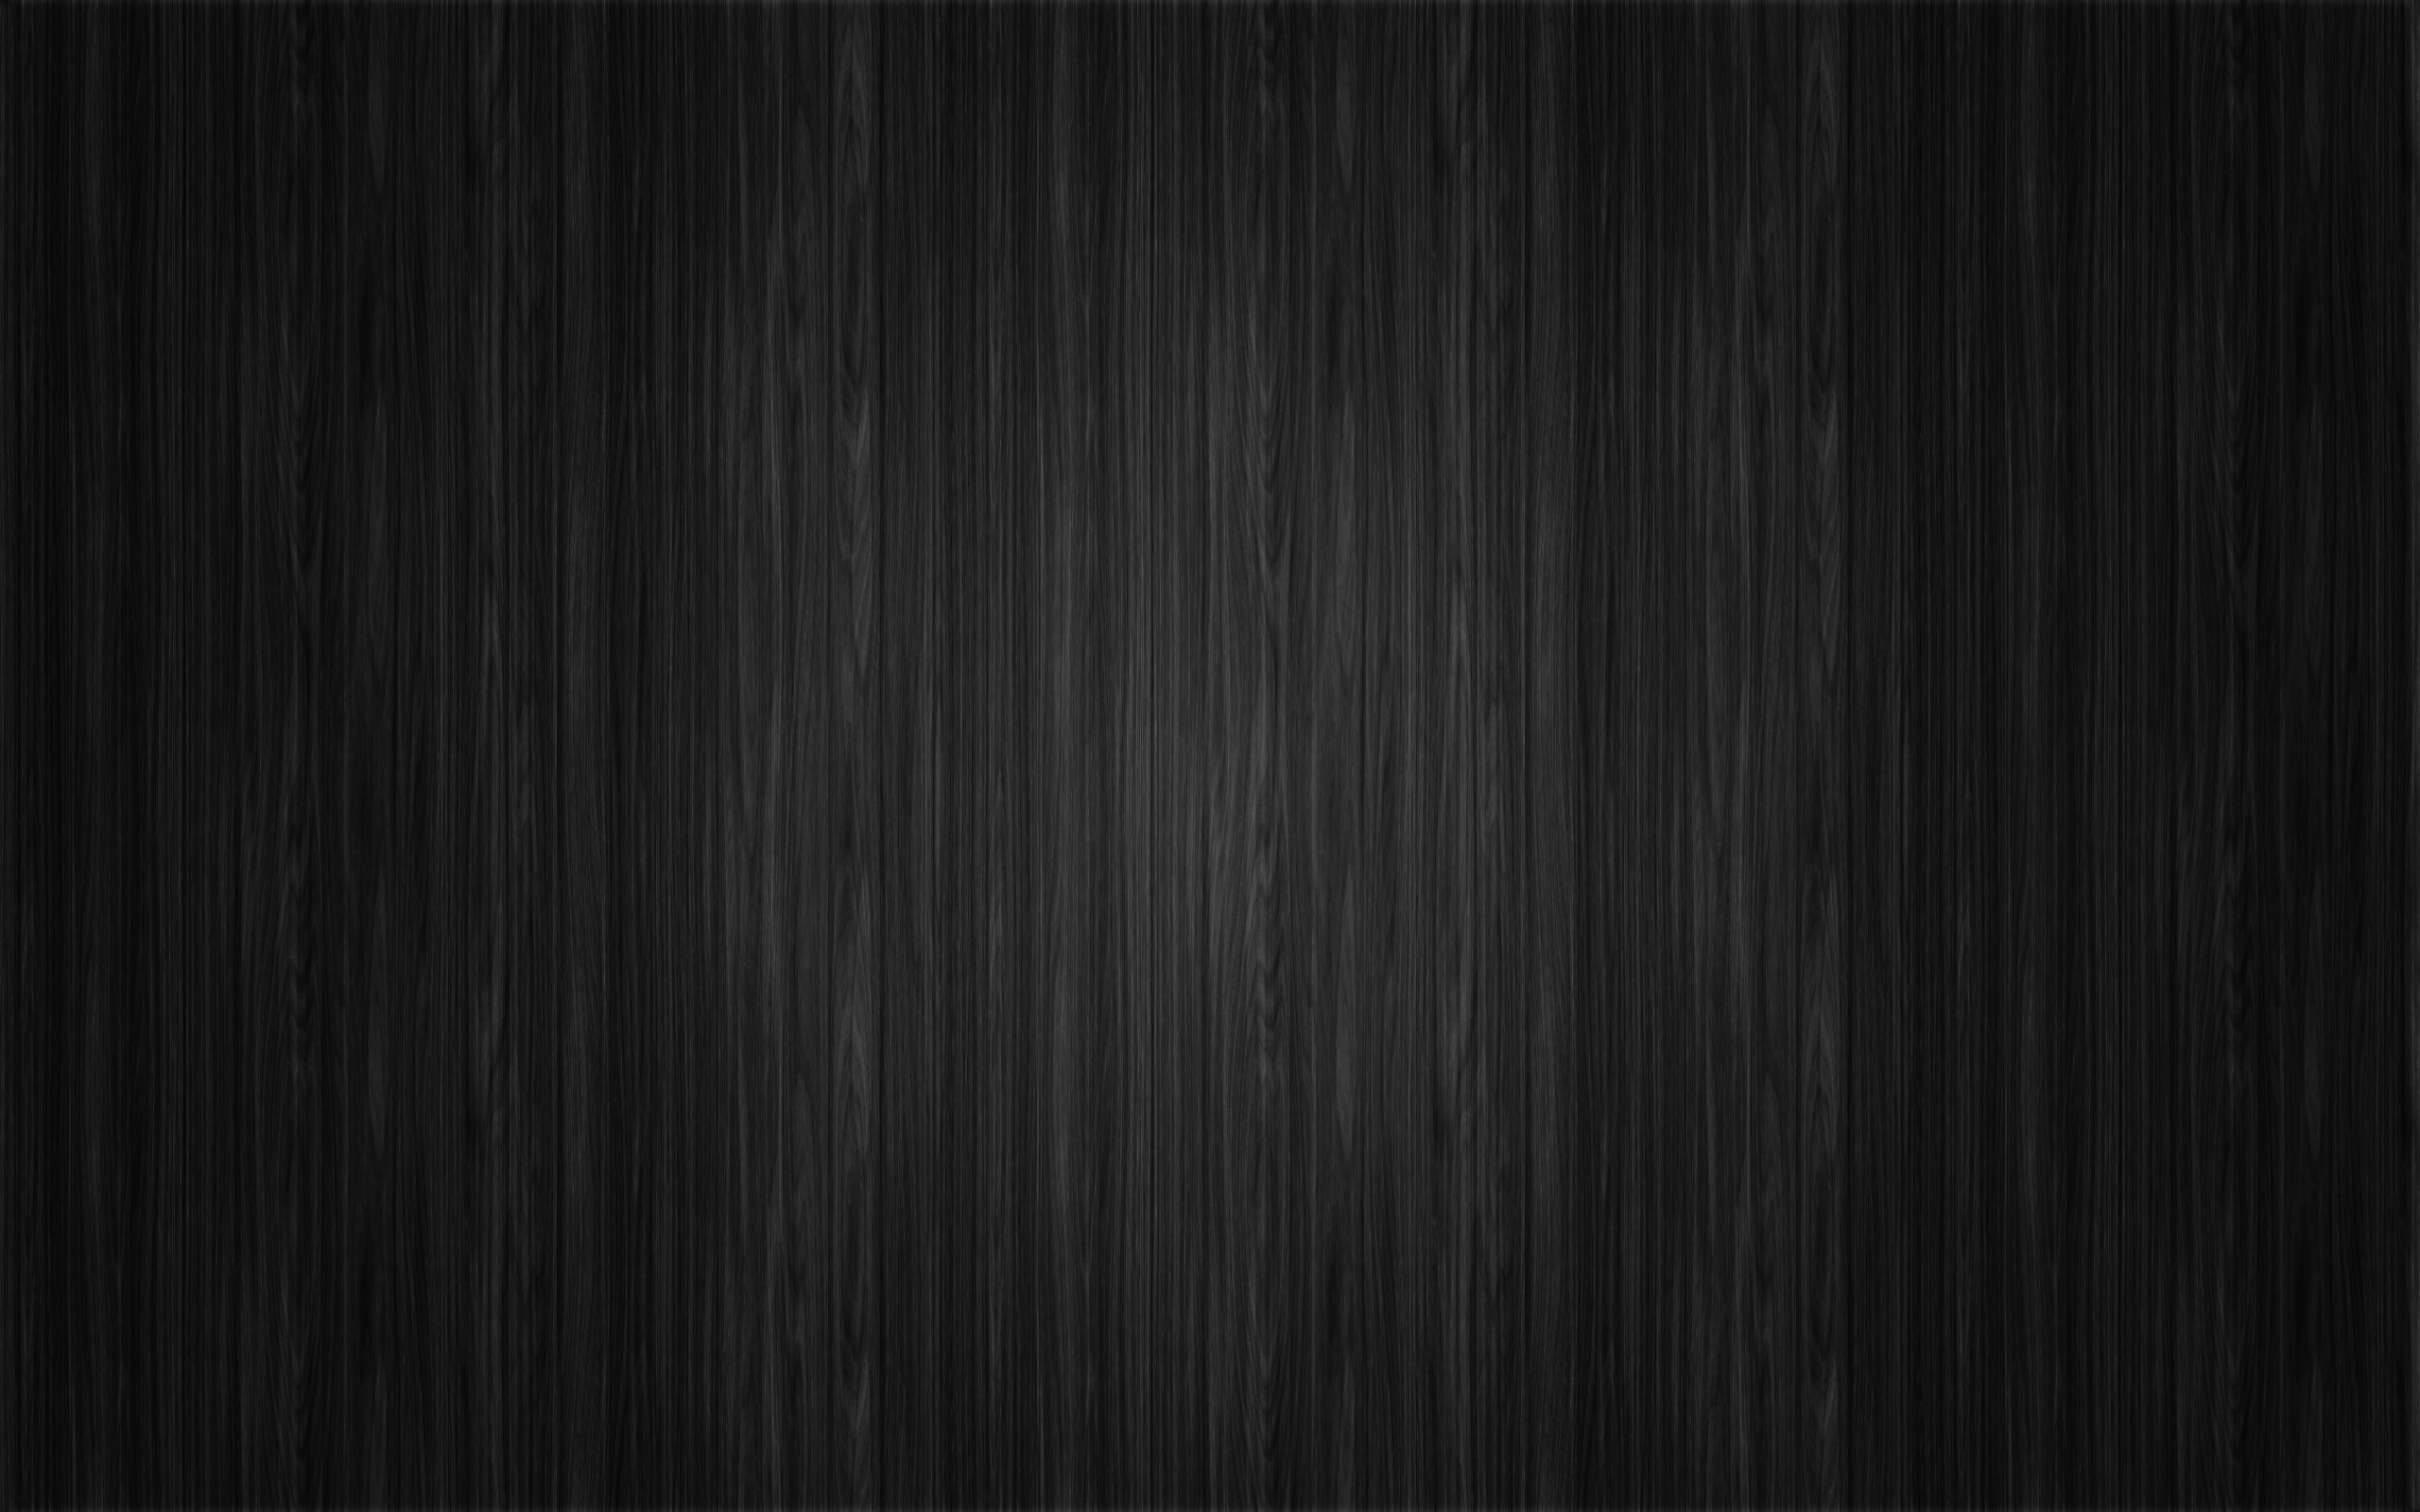 Black Wood Desktop Background